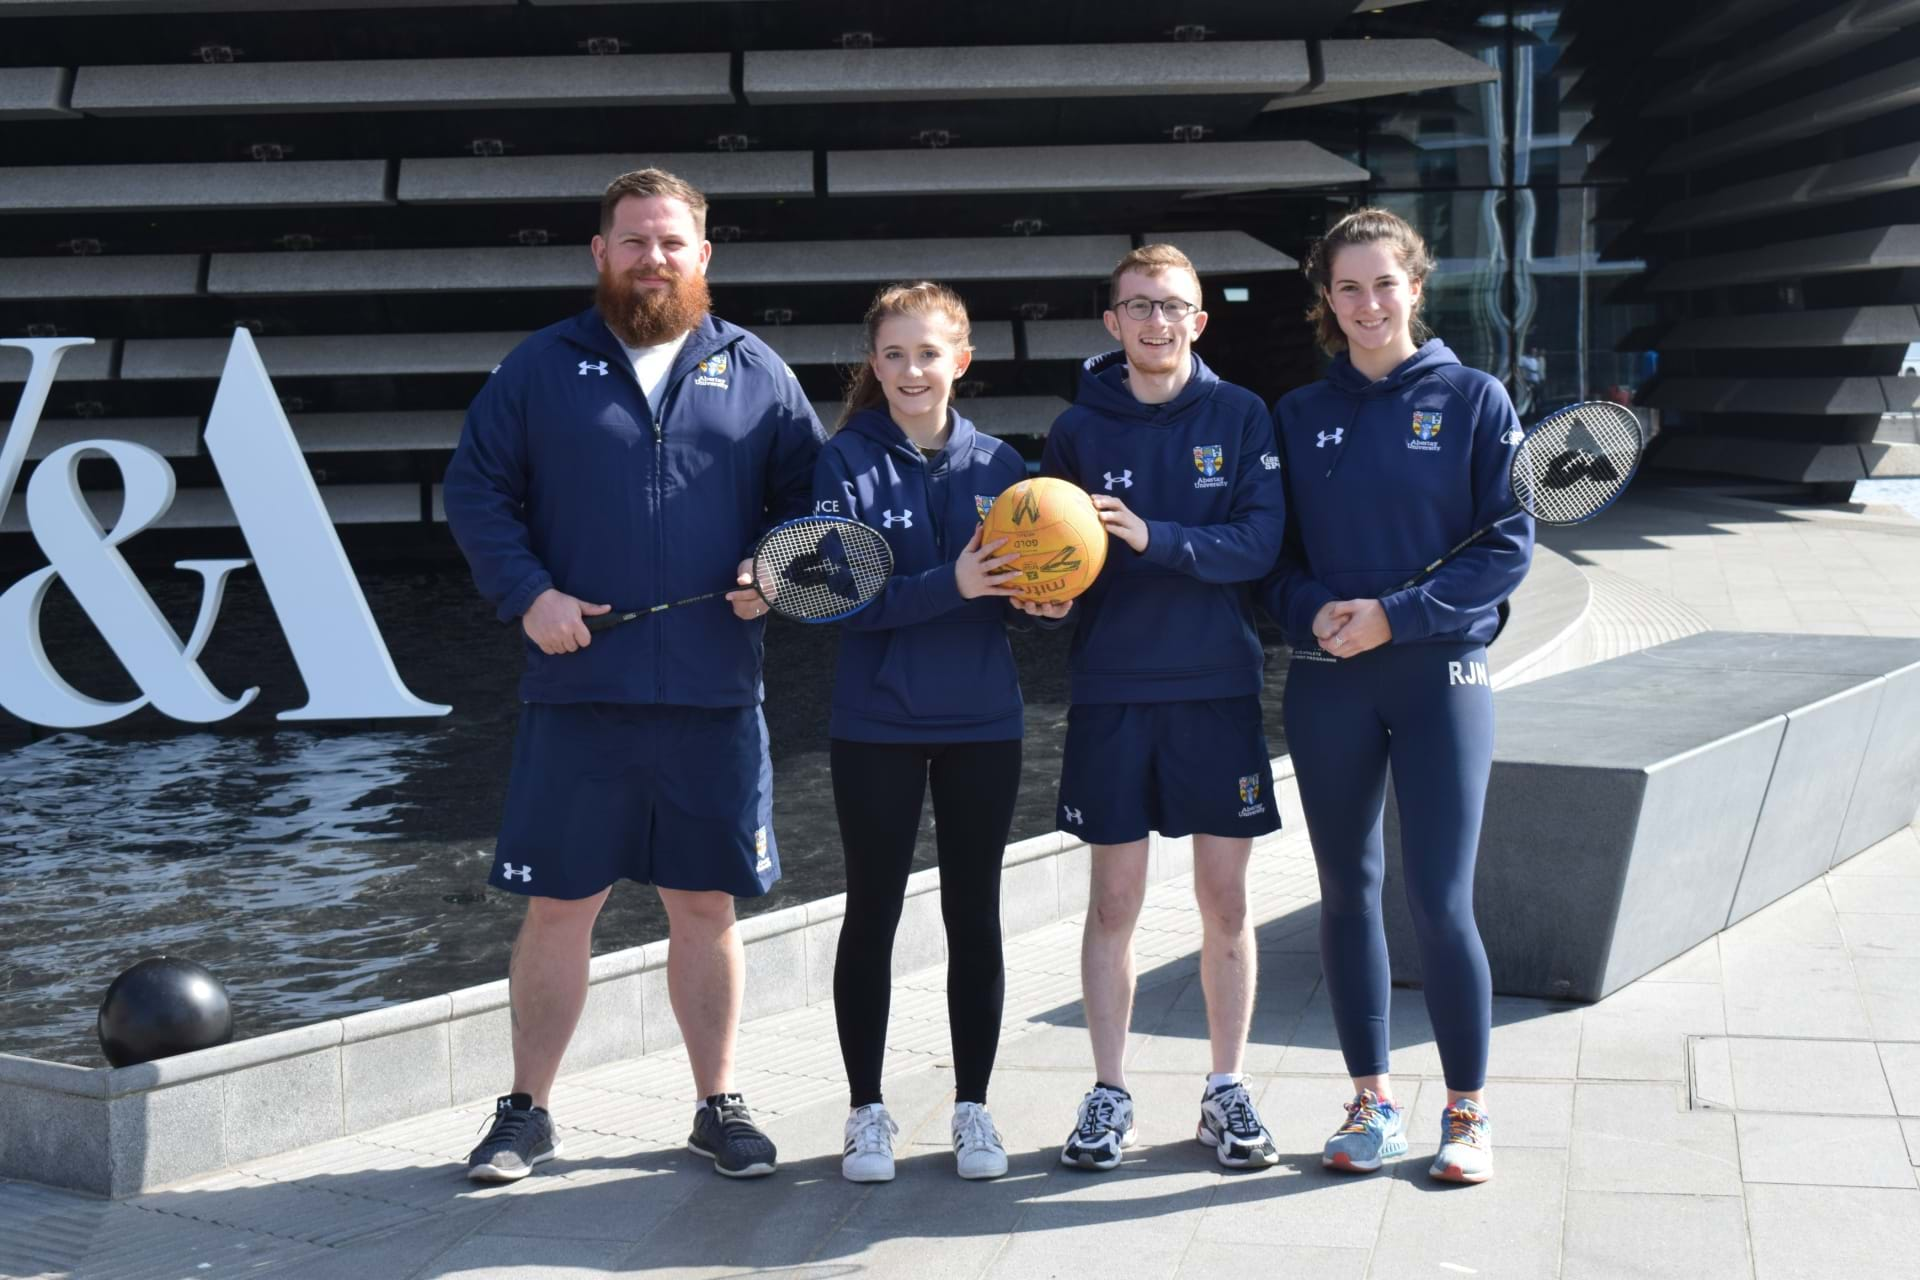 Abertay Sport's Ryan Beattie, Sam Guild, Fraser Allan and Rebecca Norval